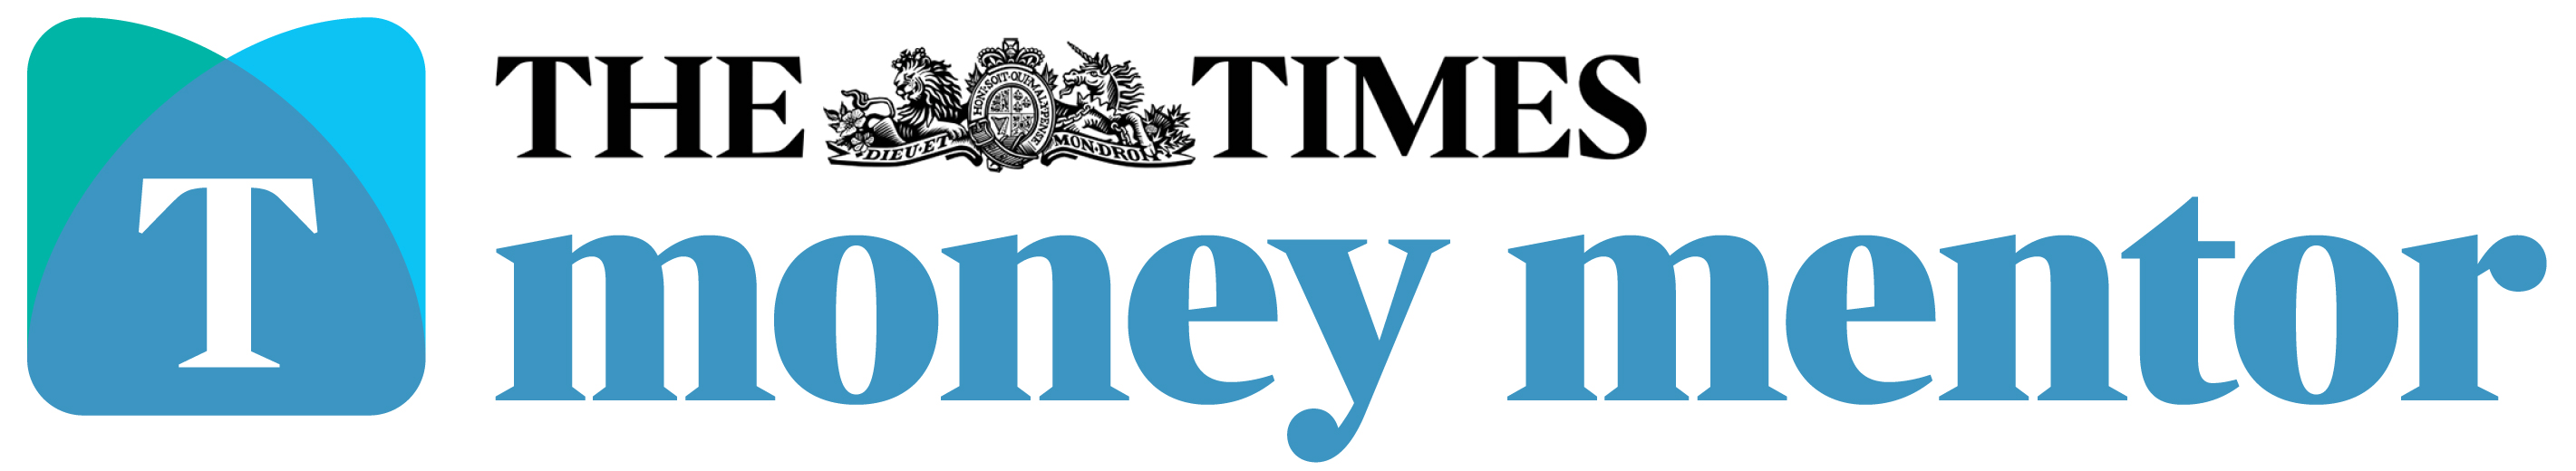 The Times Money Mentor Heading